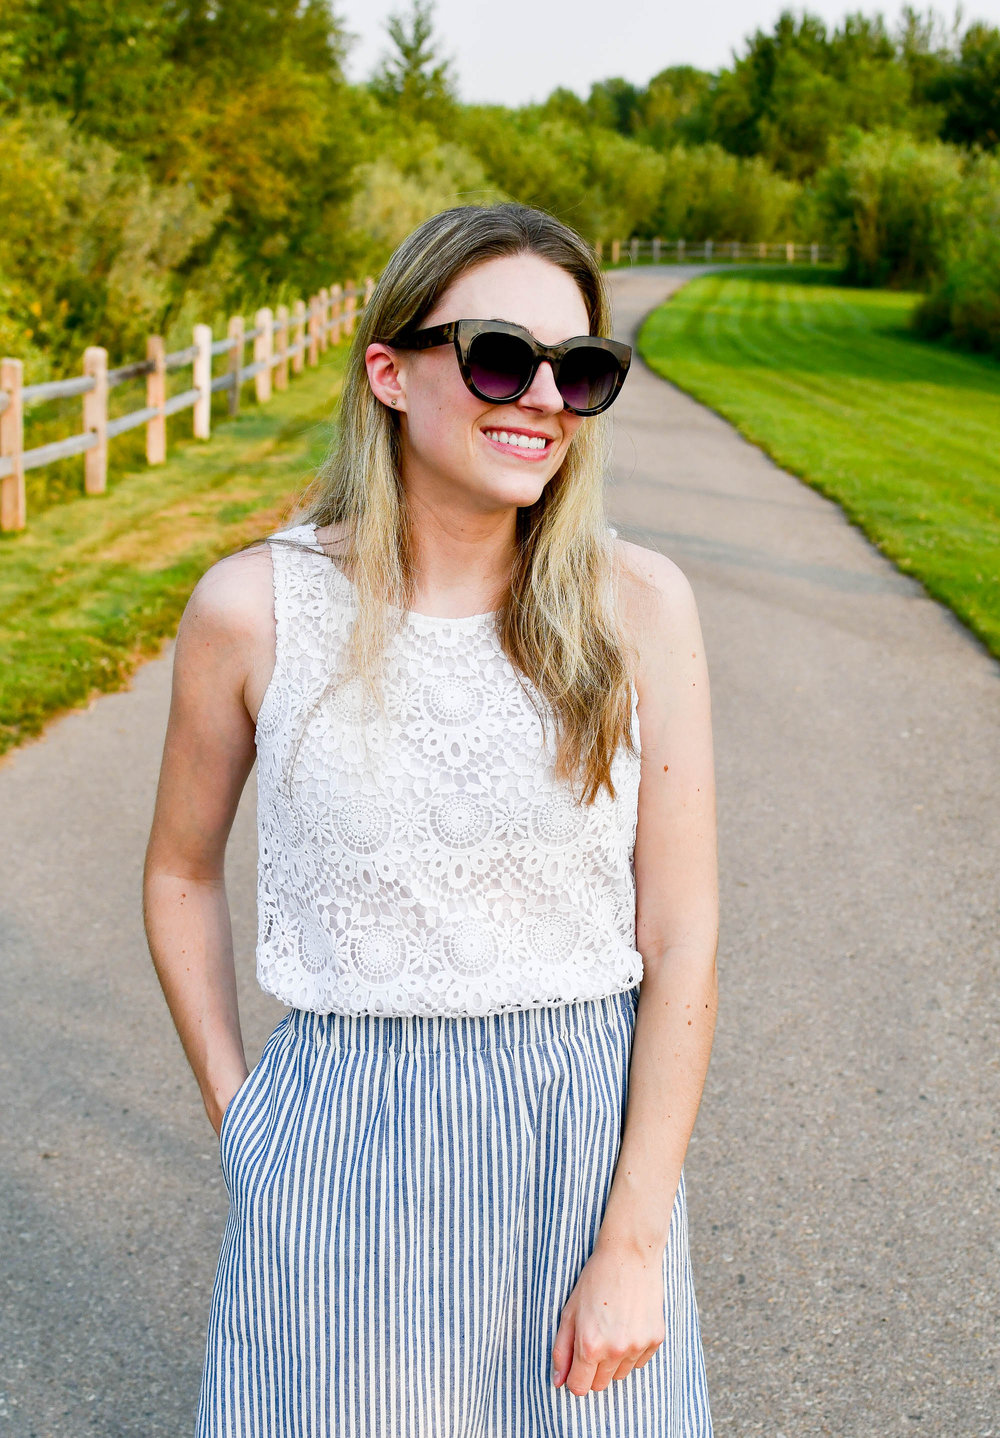 Lace tank top summer outfit — Cotton Cashmere Cat Hair